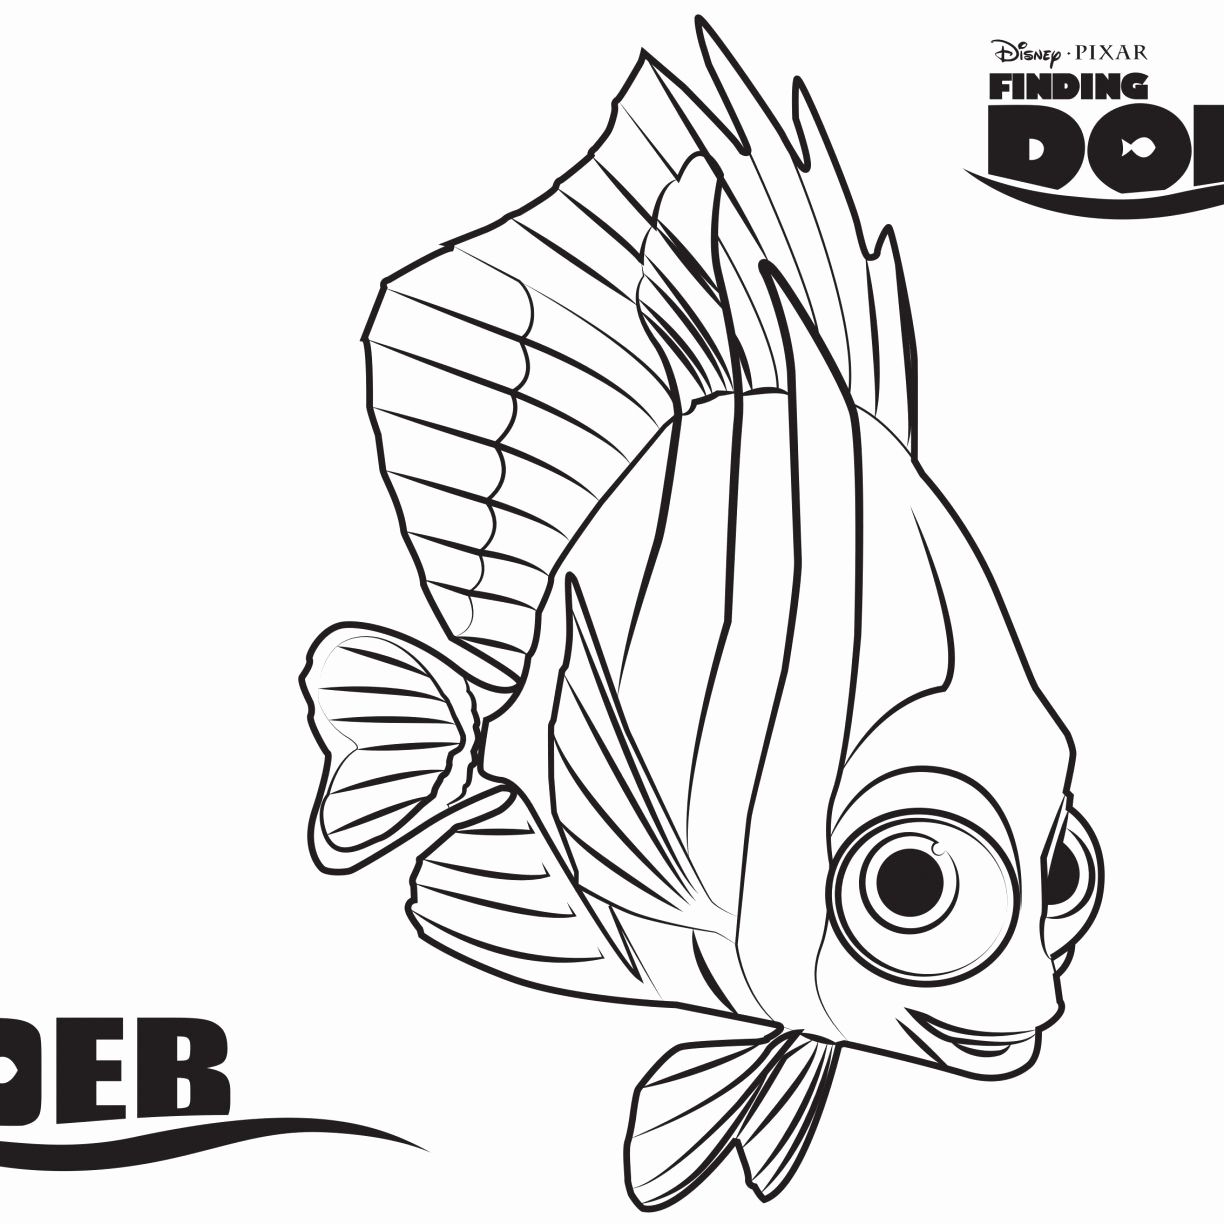 1224x1224 Excellent Finding Nemo Coloring Pages Bruce Professional Disney